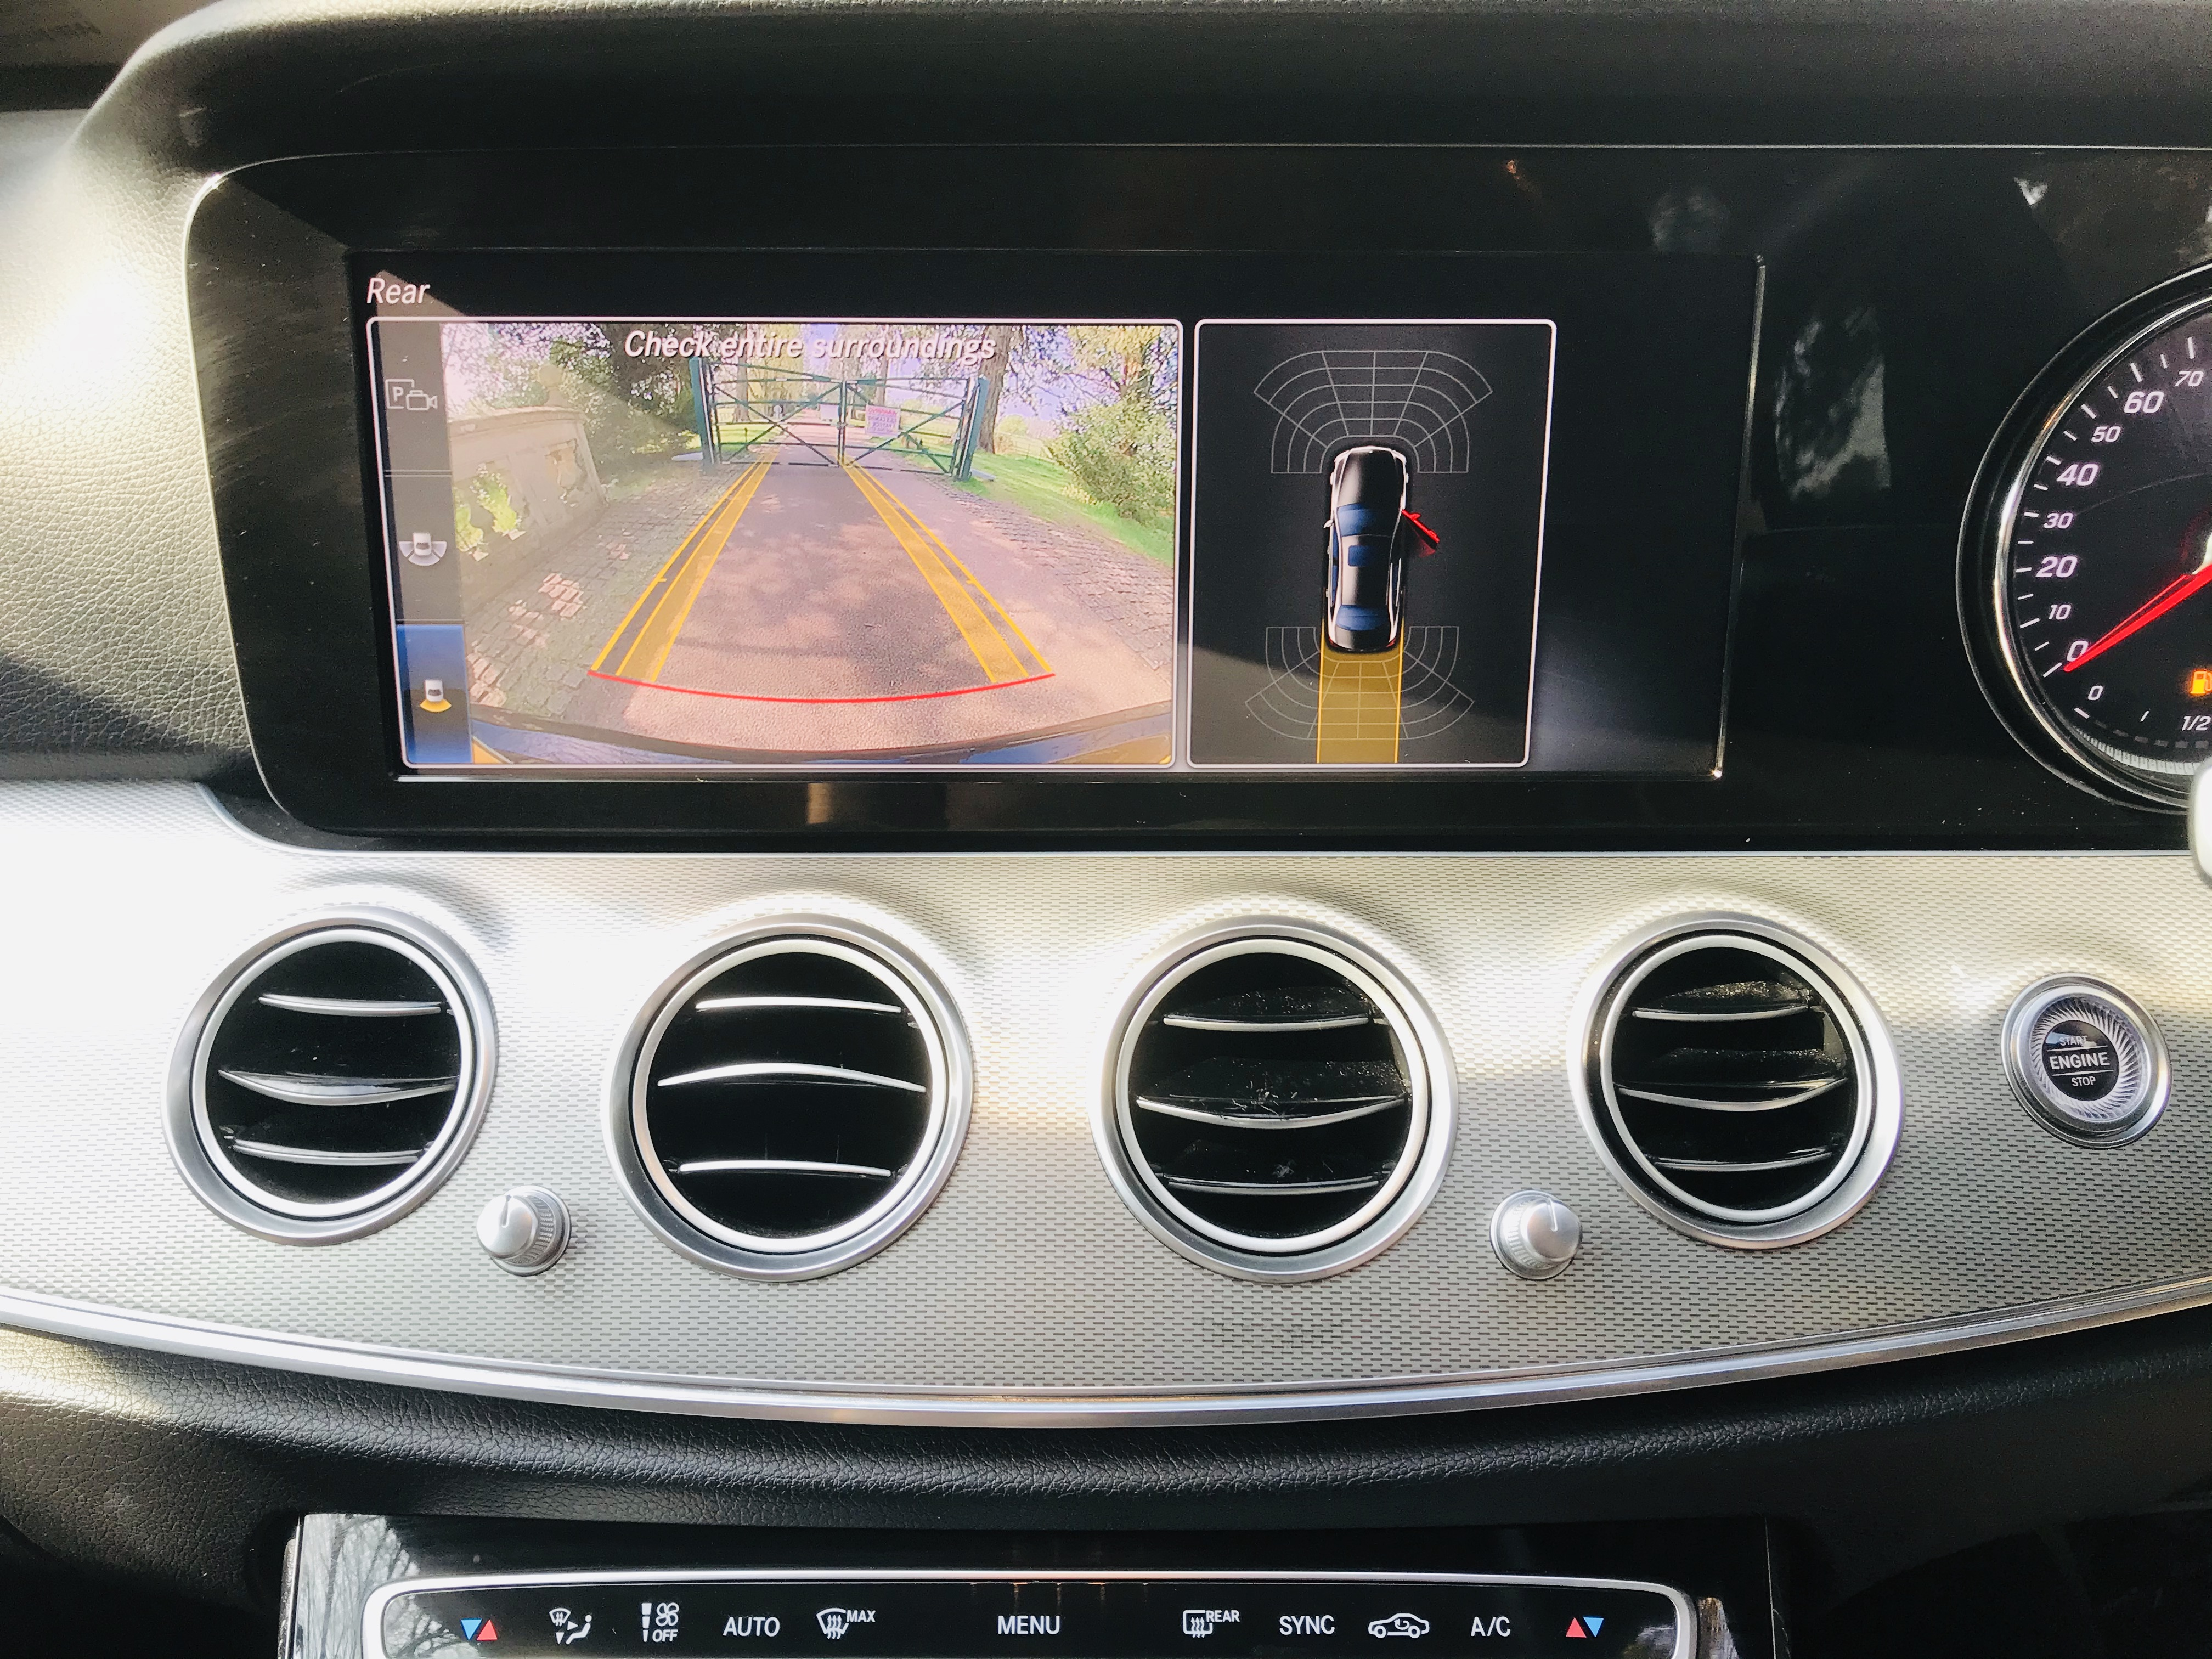 """On Sale MERCEDES E220d """"SPECIAL EQUIPMENT"""" 9G TRONIC (2019 MODEL) 1 OWNER - SAT NAV - LEATHER - WOW! - Image 25 of 26"""